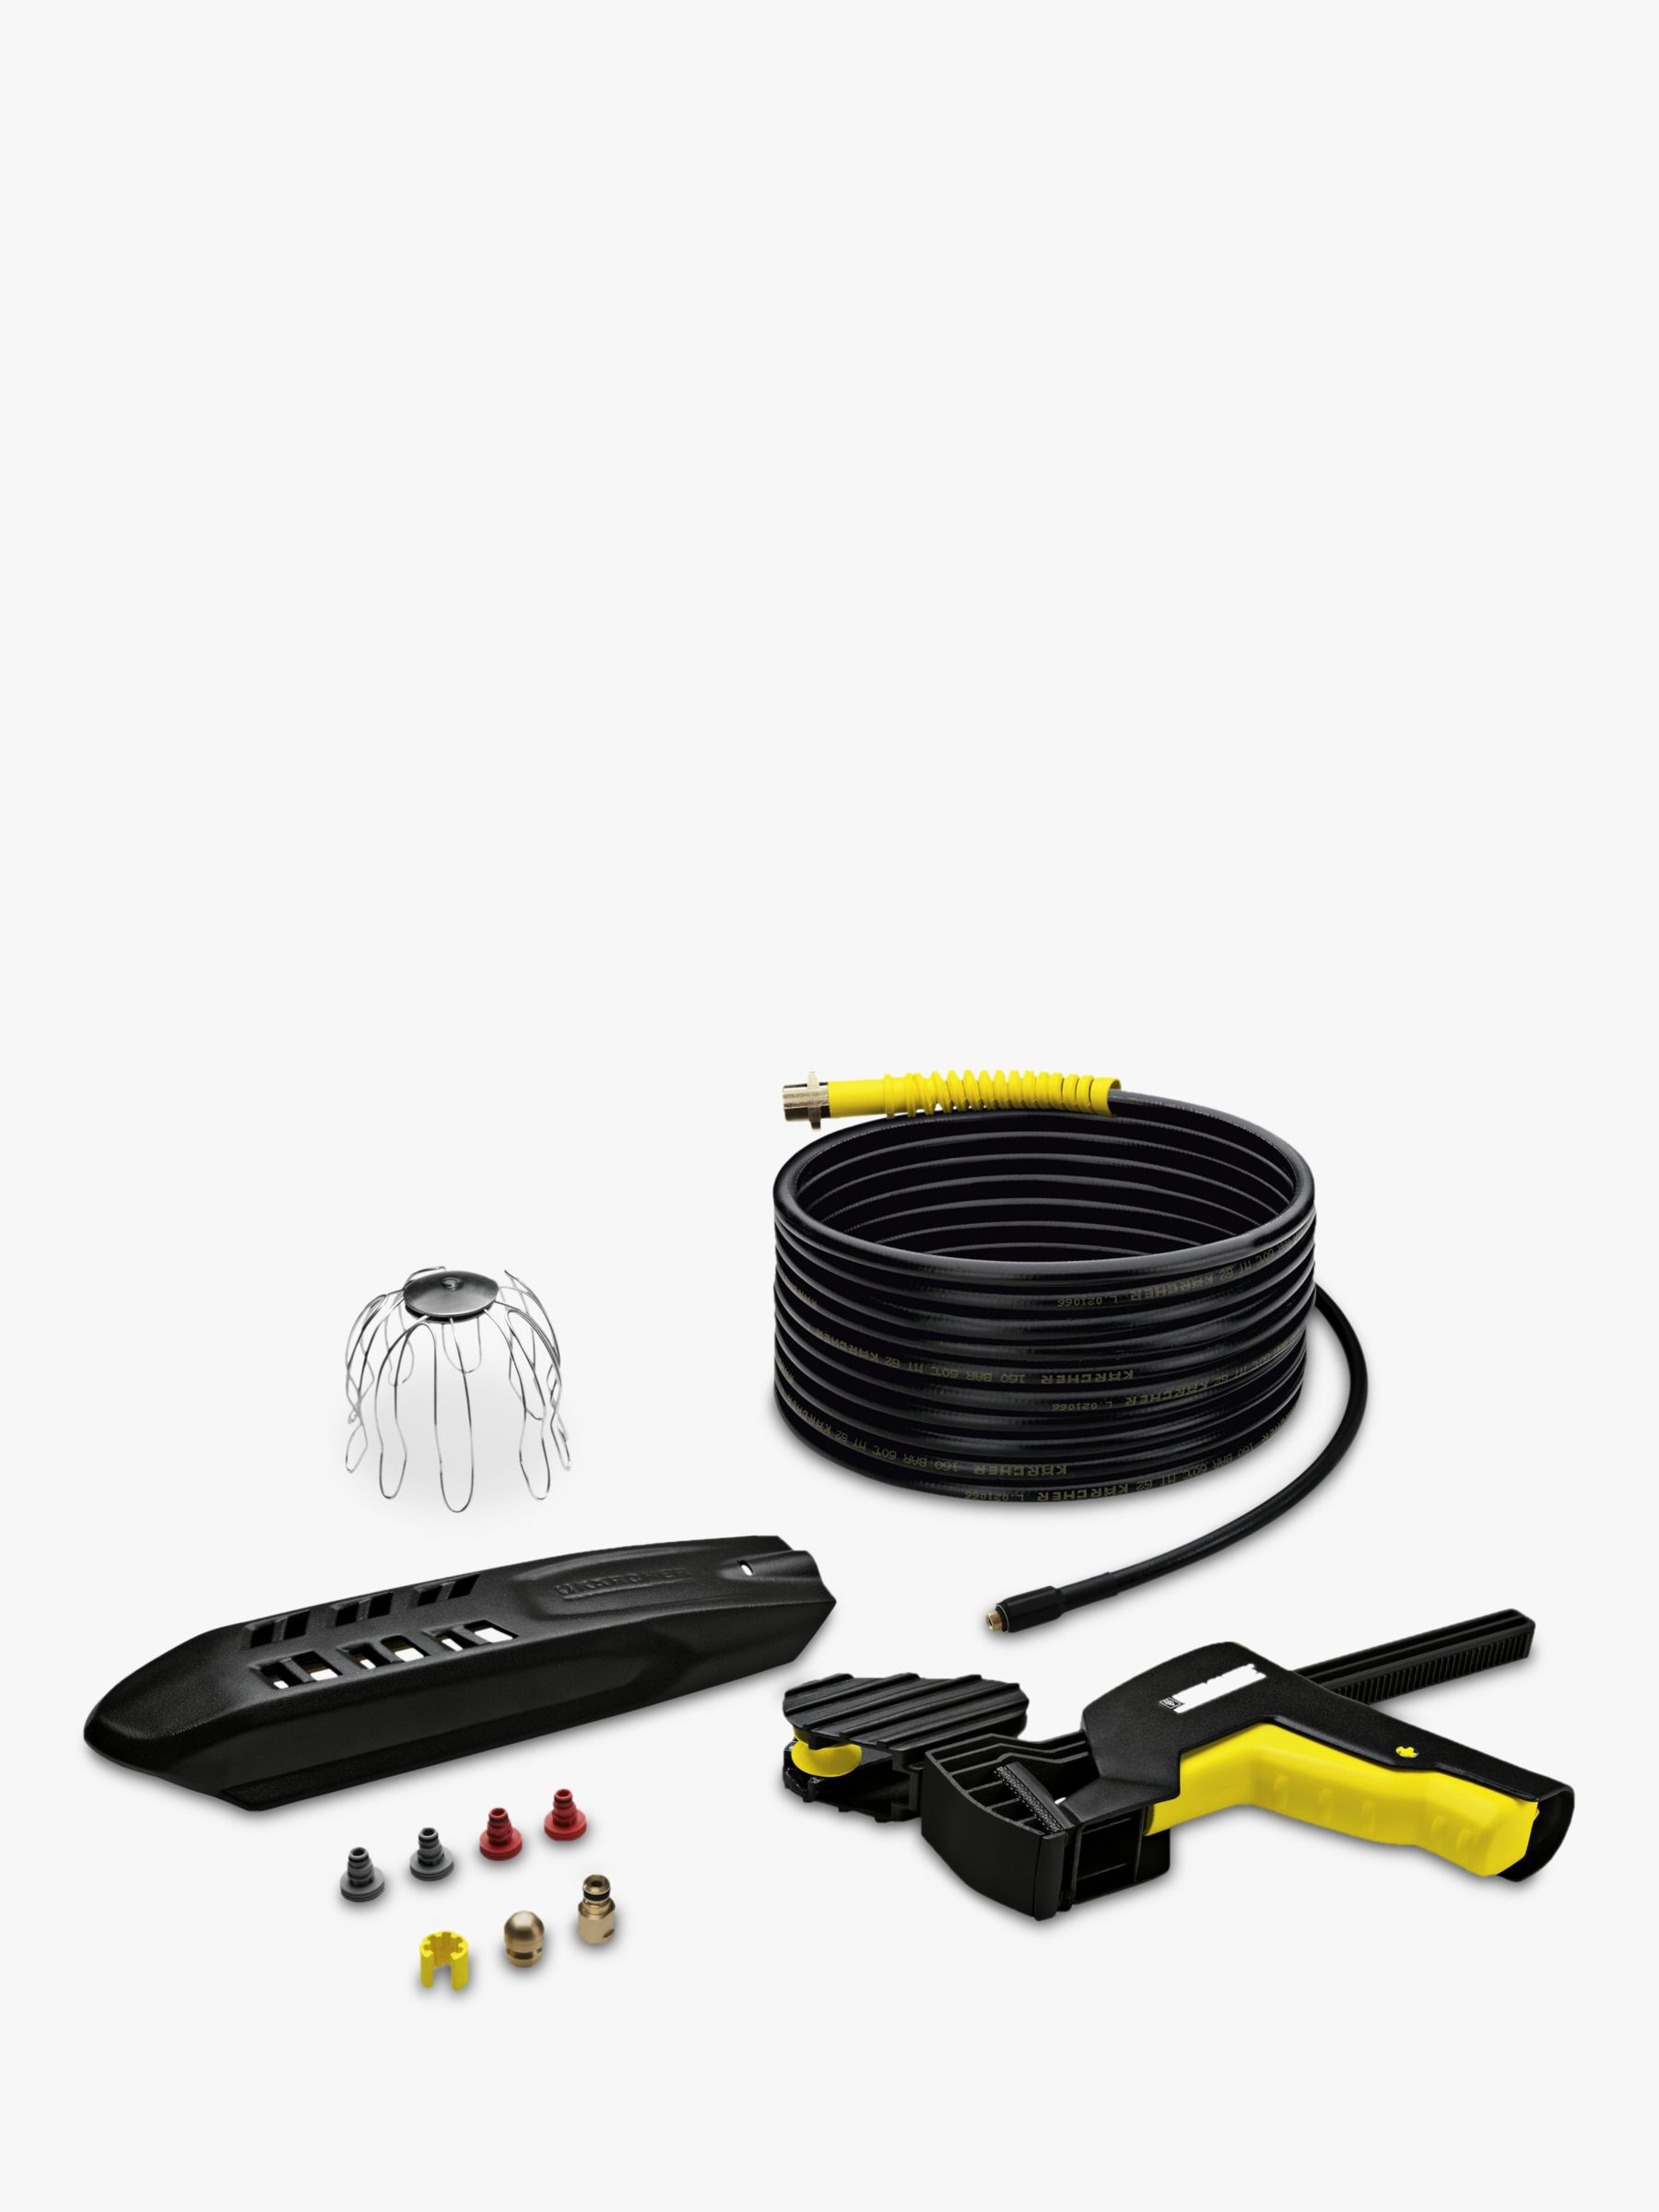 Karcher Kärcher PC20 Gutter and Pipe Cleaning Set